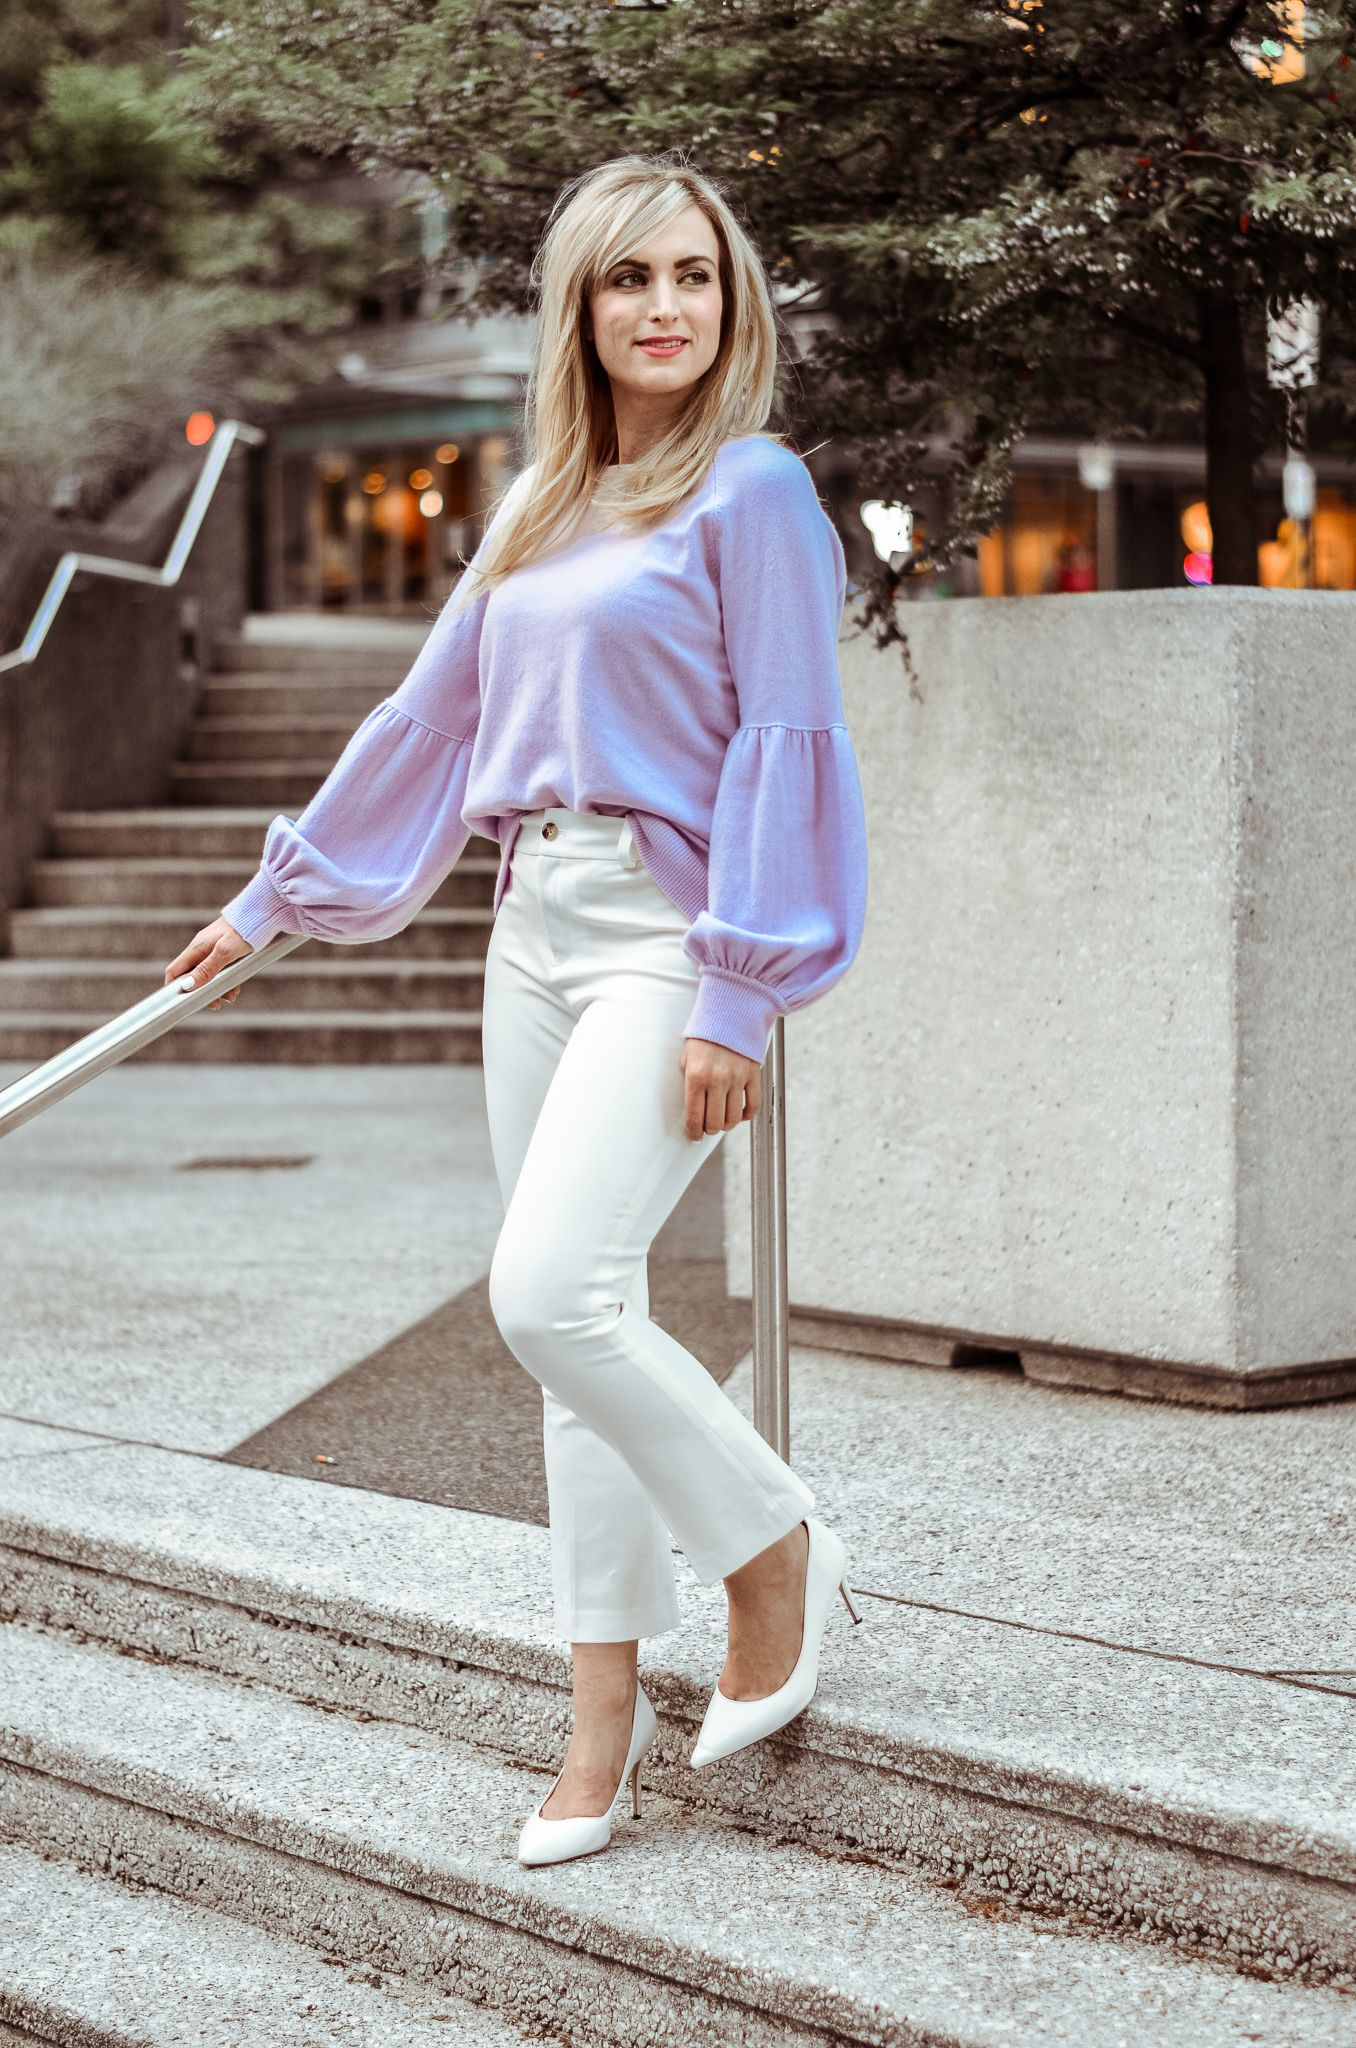 Fashion Blogger Legallee Blonde Wearing White Capri Pants And Lilac Cashmere Sweater Summer Work Outfits Summer Work Wear Fashion Clothes Women [ 2048 x 1356 Pixel ]